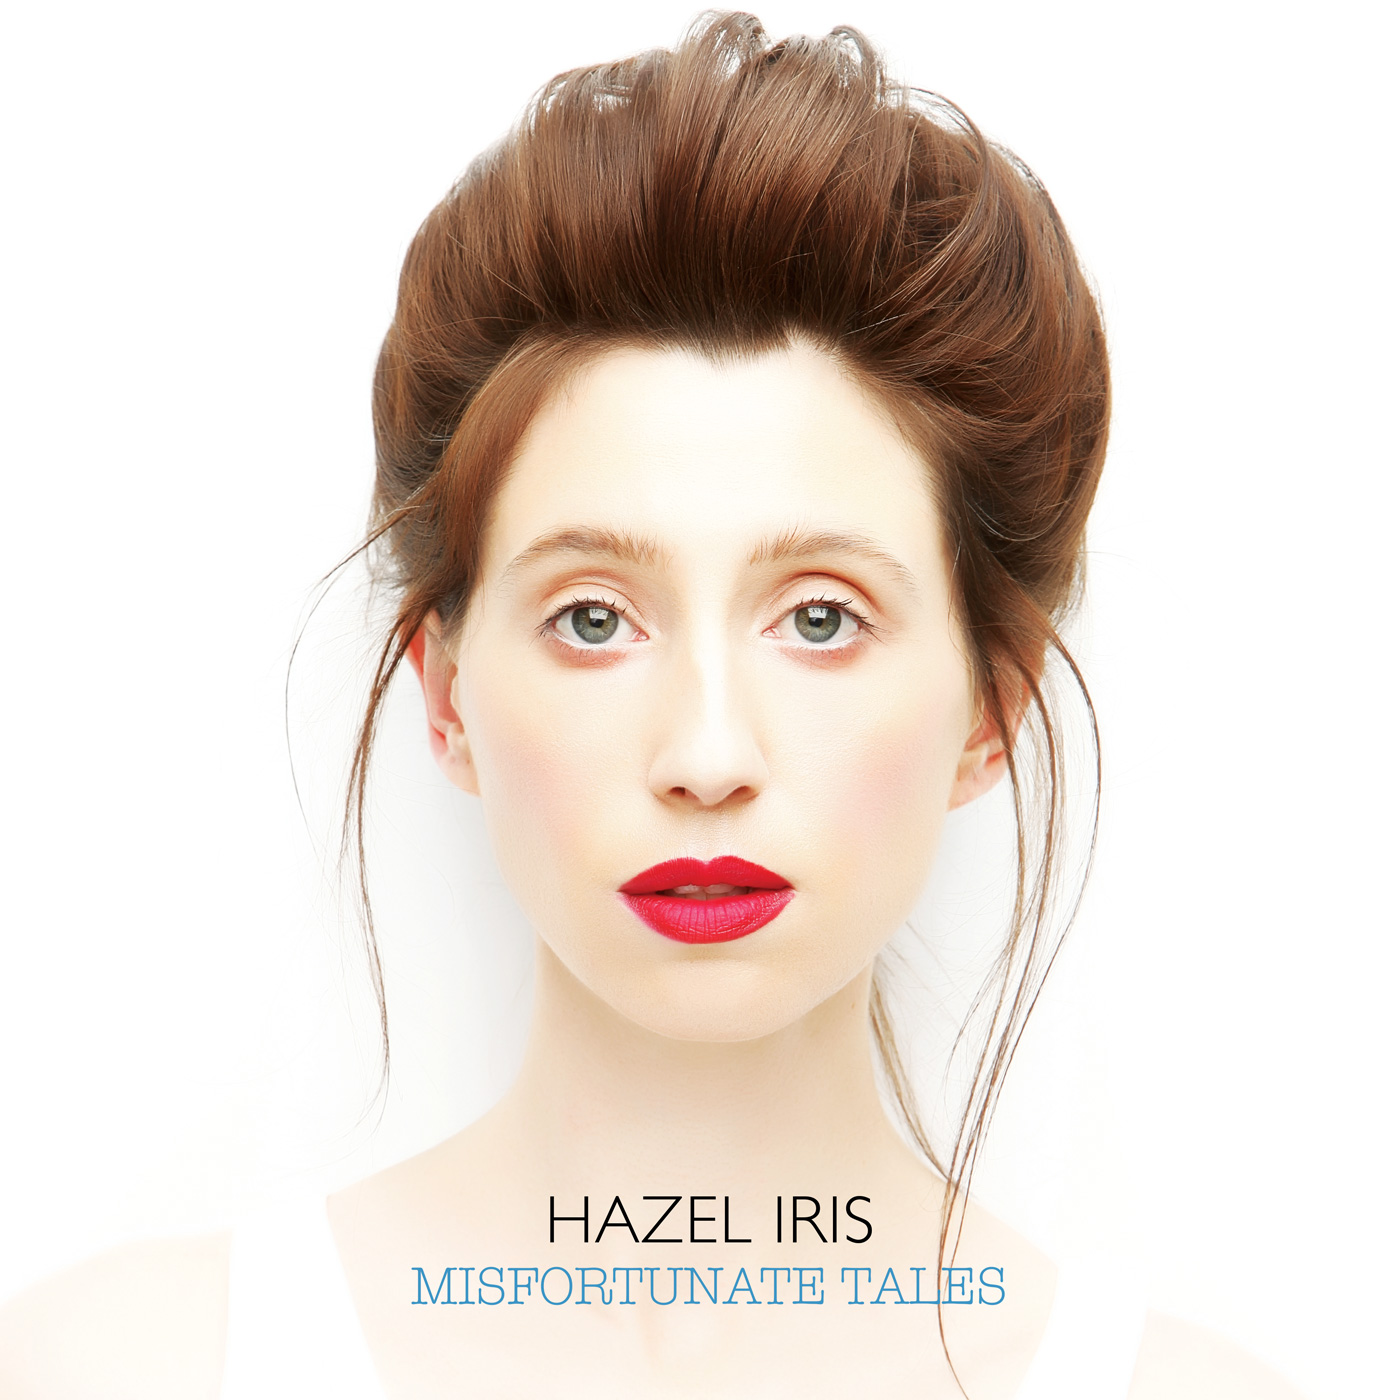 hazel iris misfortunate tales cover